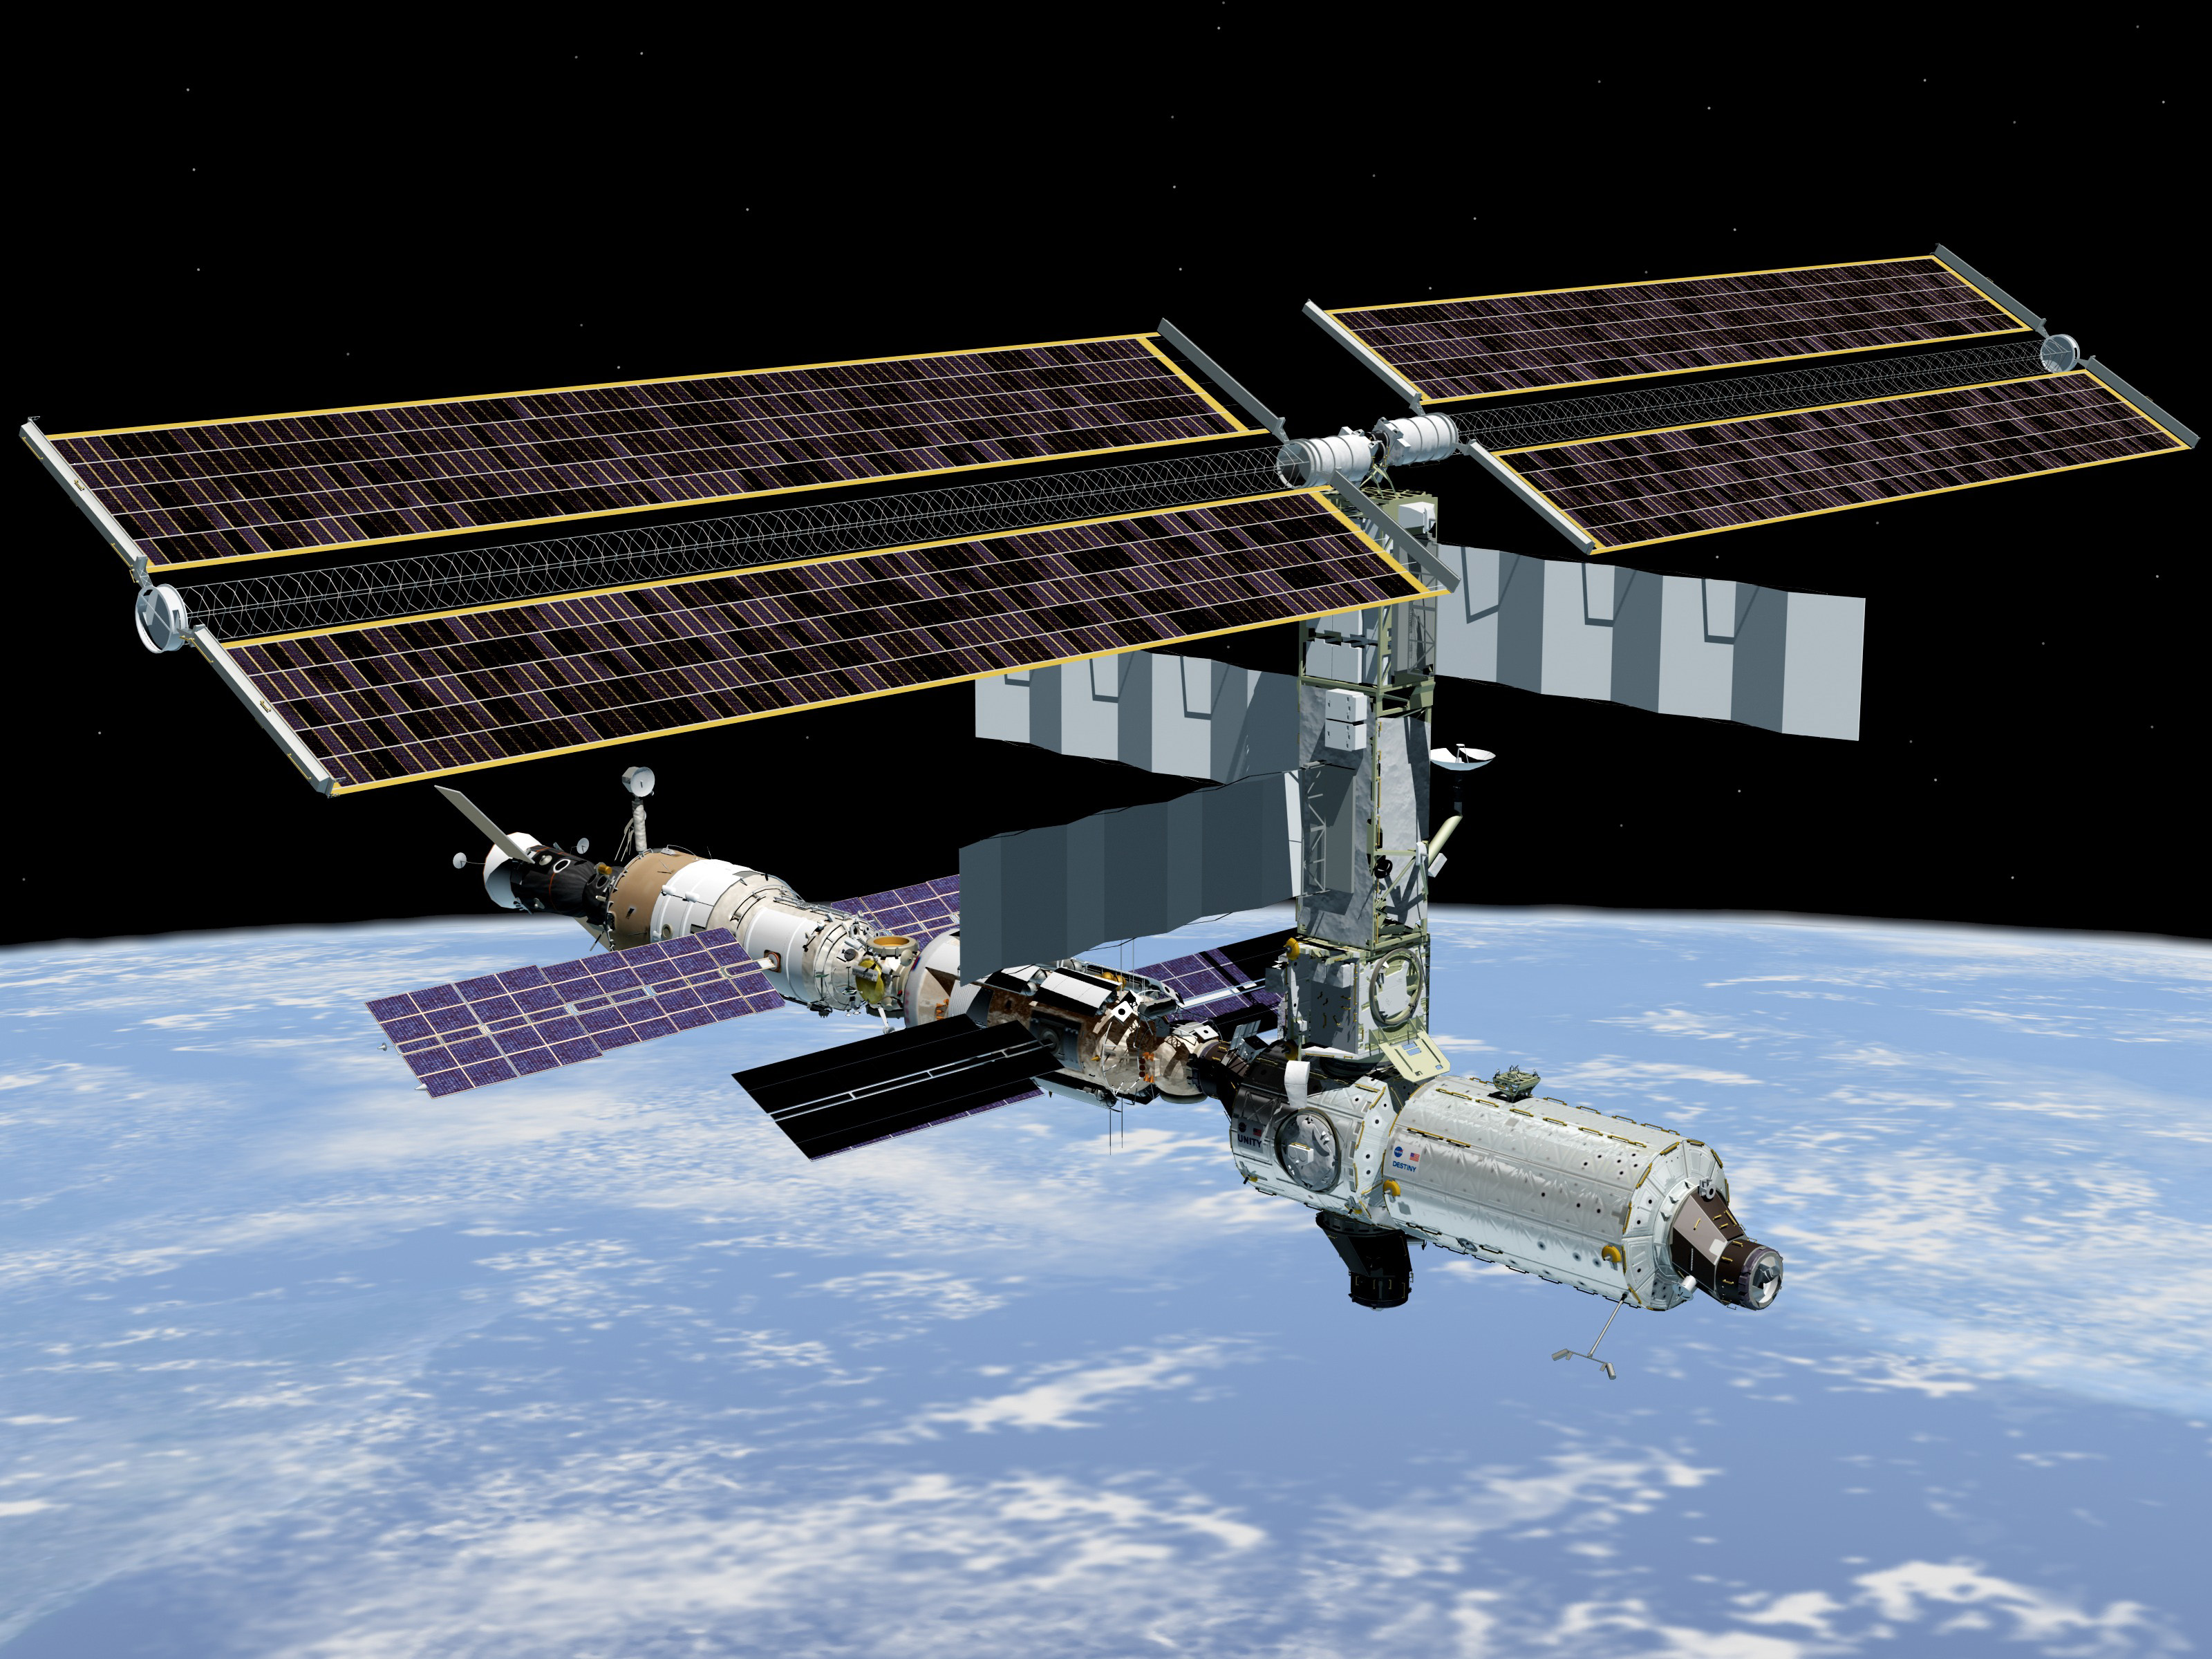 The International Space Station's New Destiny Module ...